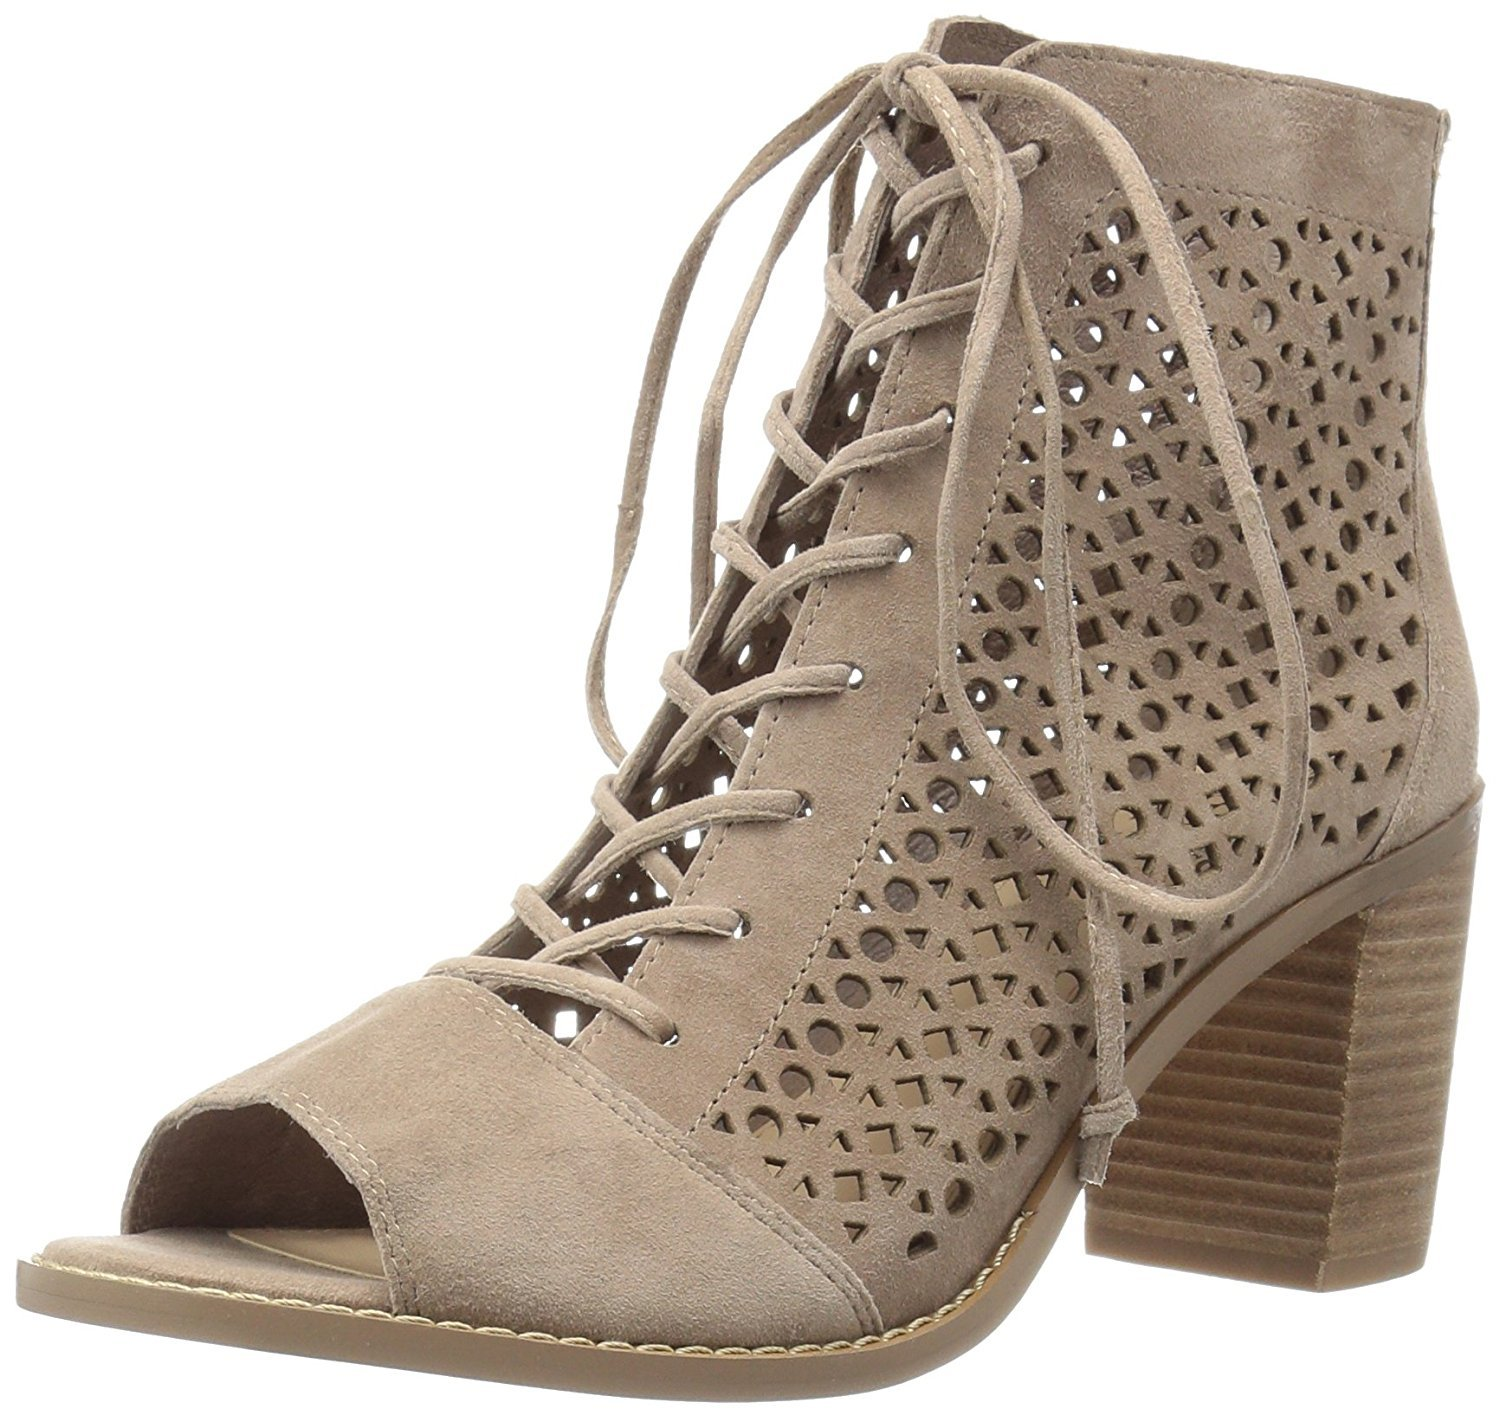 Vince Camuto Womens Trevan Suede Open Toe Ankle Fashion, Smoke Cloud, Size 11.0